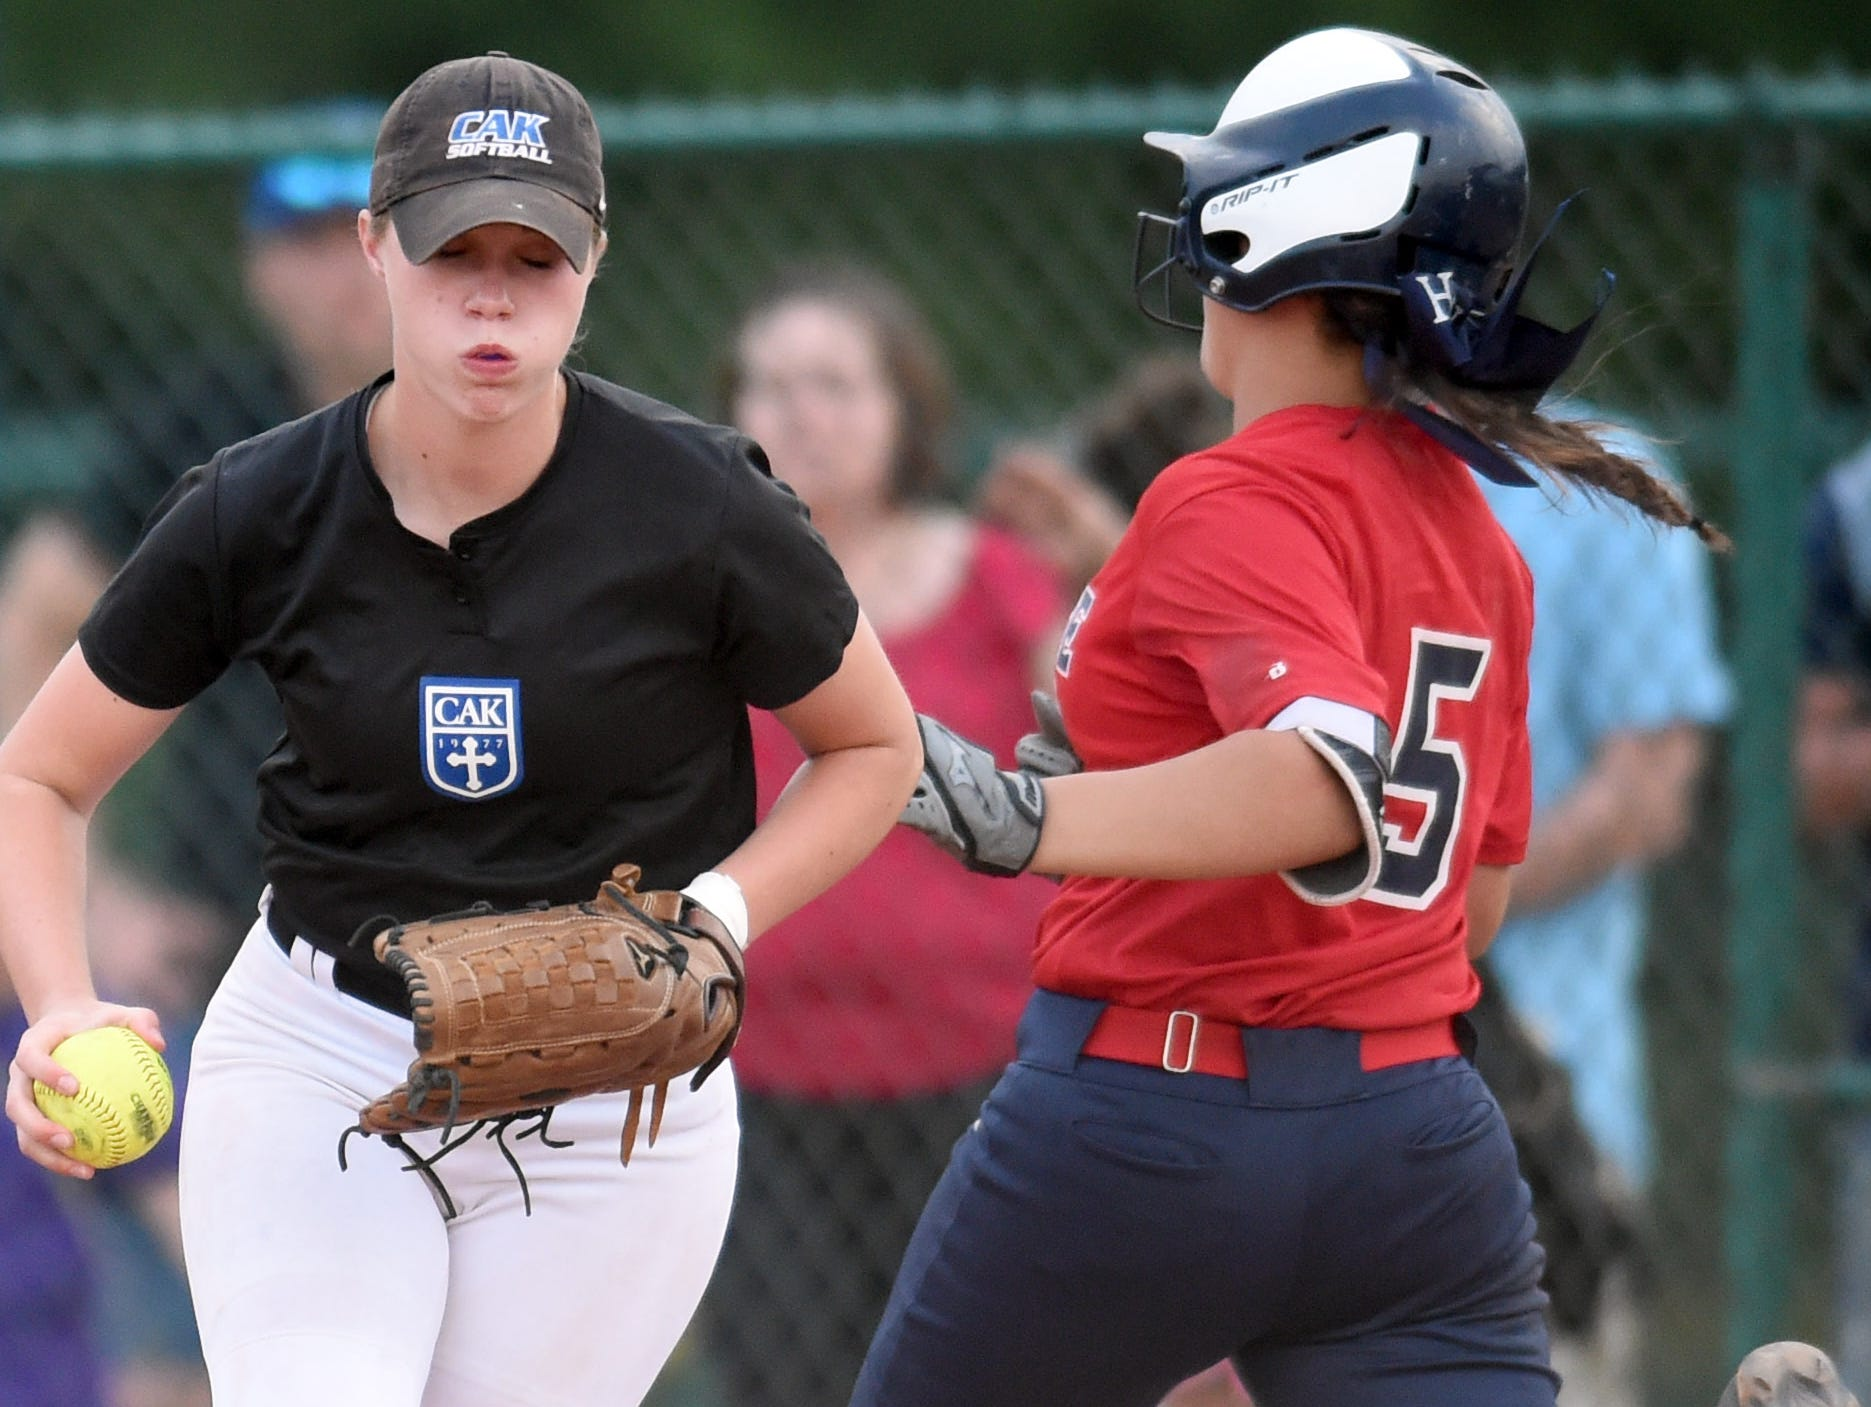 CAK's Caroline Cavin (44), left, gets White House Heritage's Alyssa Arden (5) out at first base in a Class AA state championship softball game at StarPlex Park in Murfreesboro during Spring Fling on Friday, May 27, 2016. CAK won 4-0.